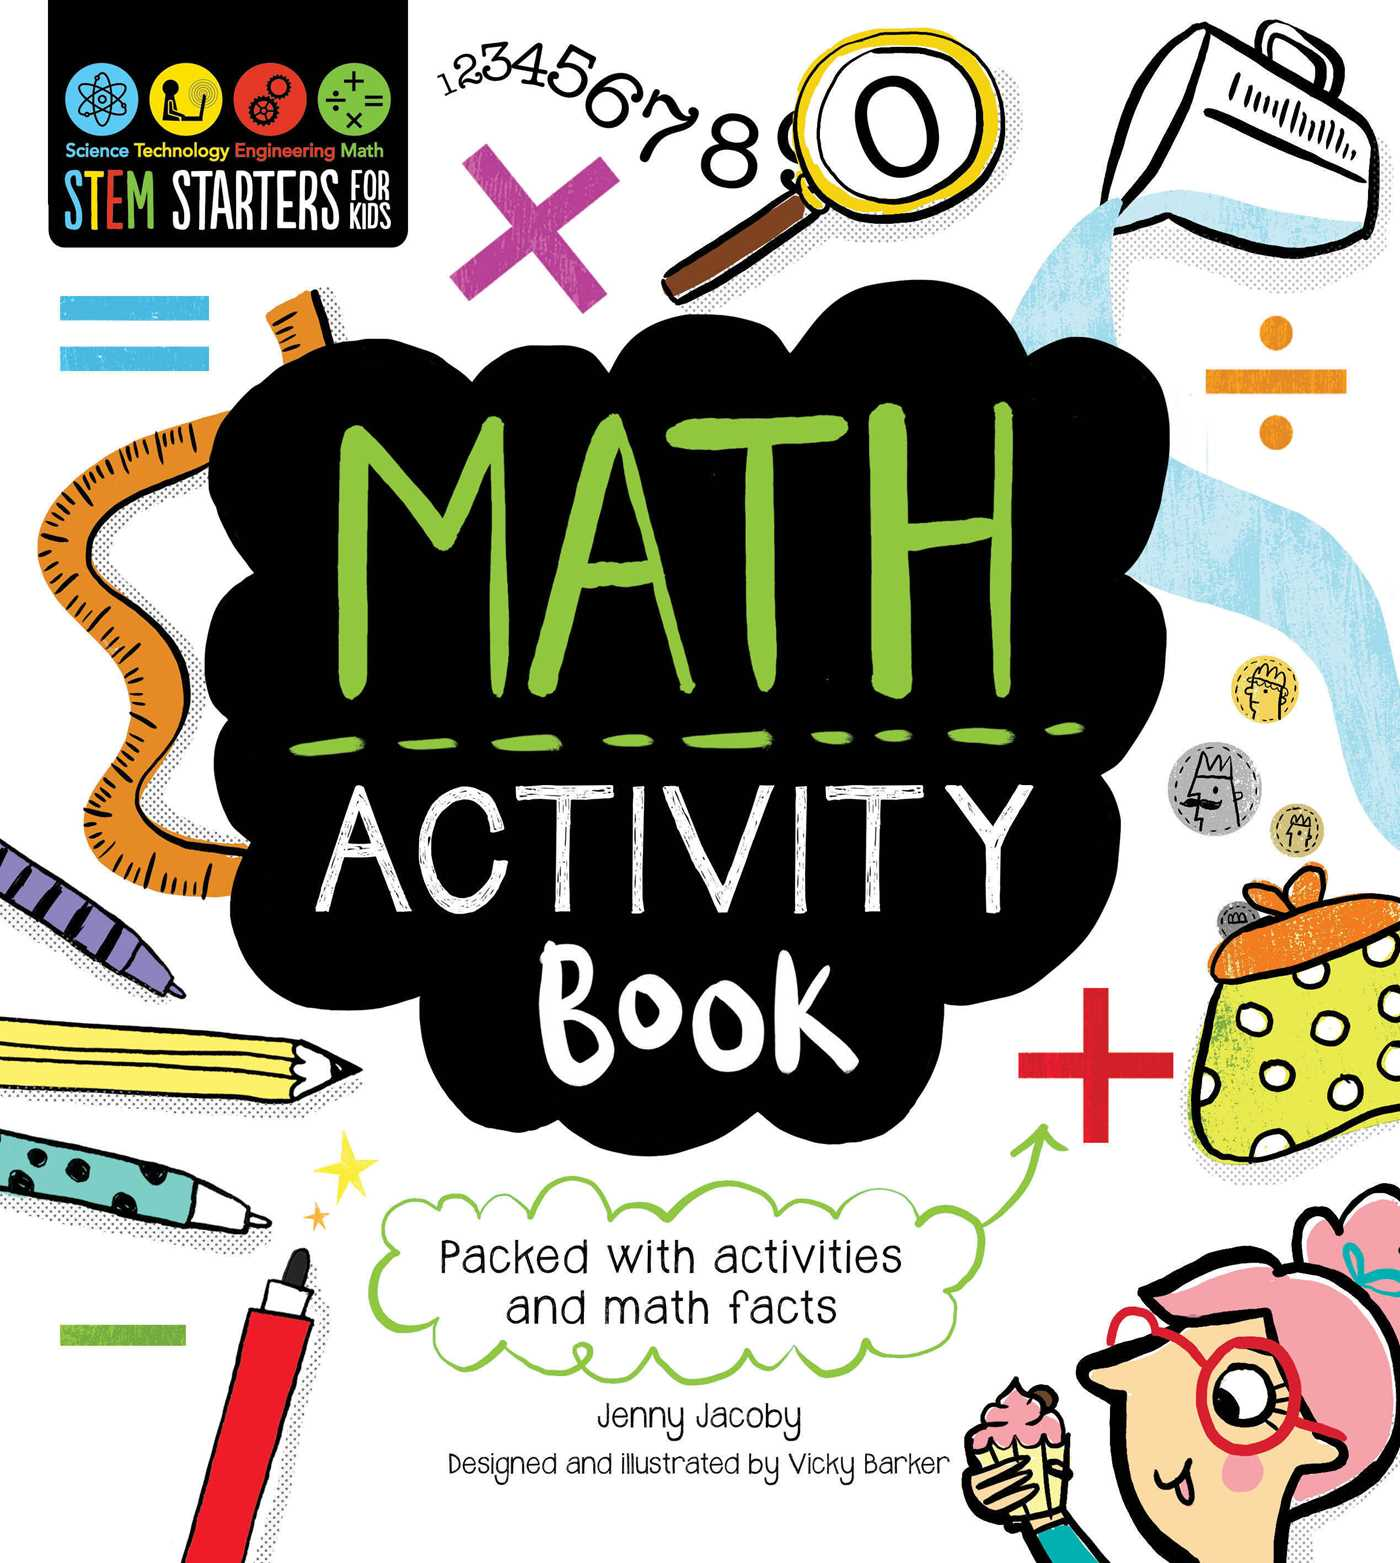 Stem Starters For Kids Math Activity Book